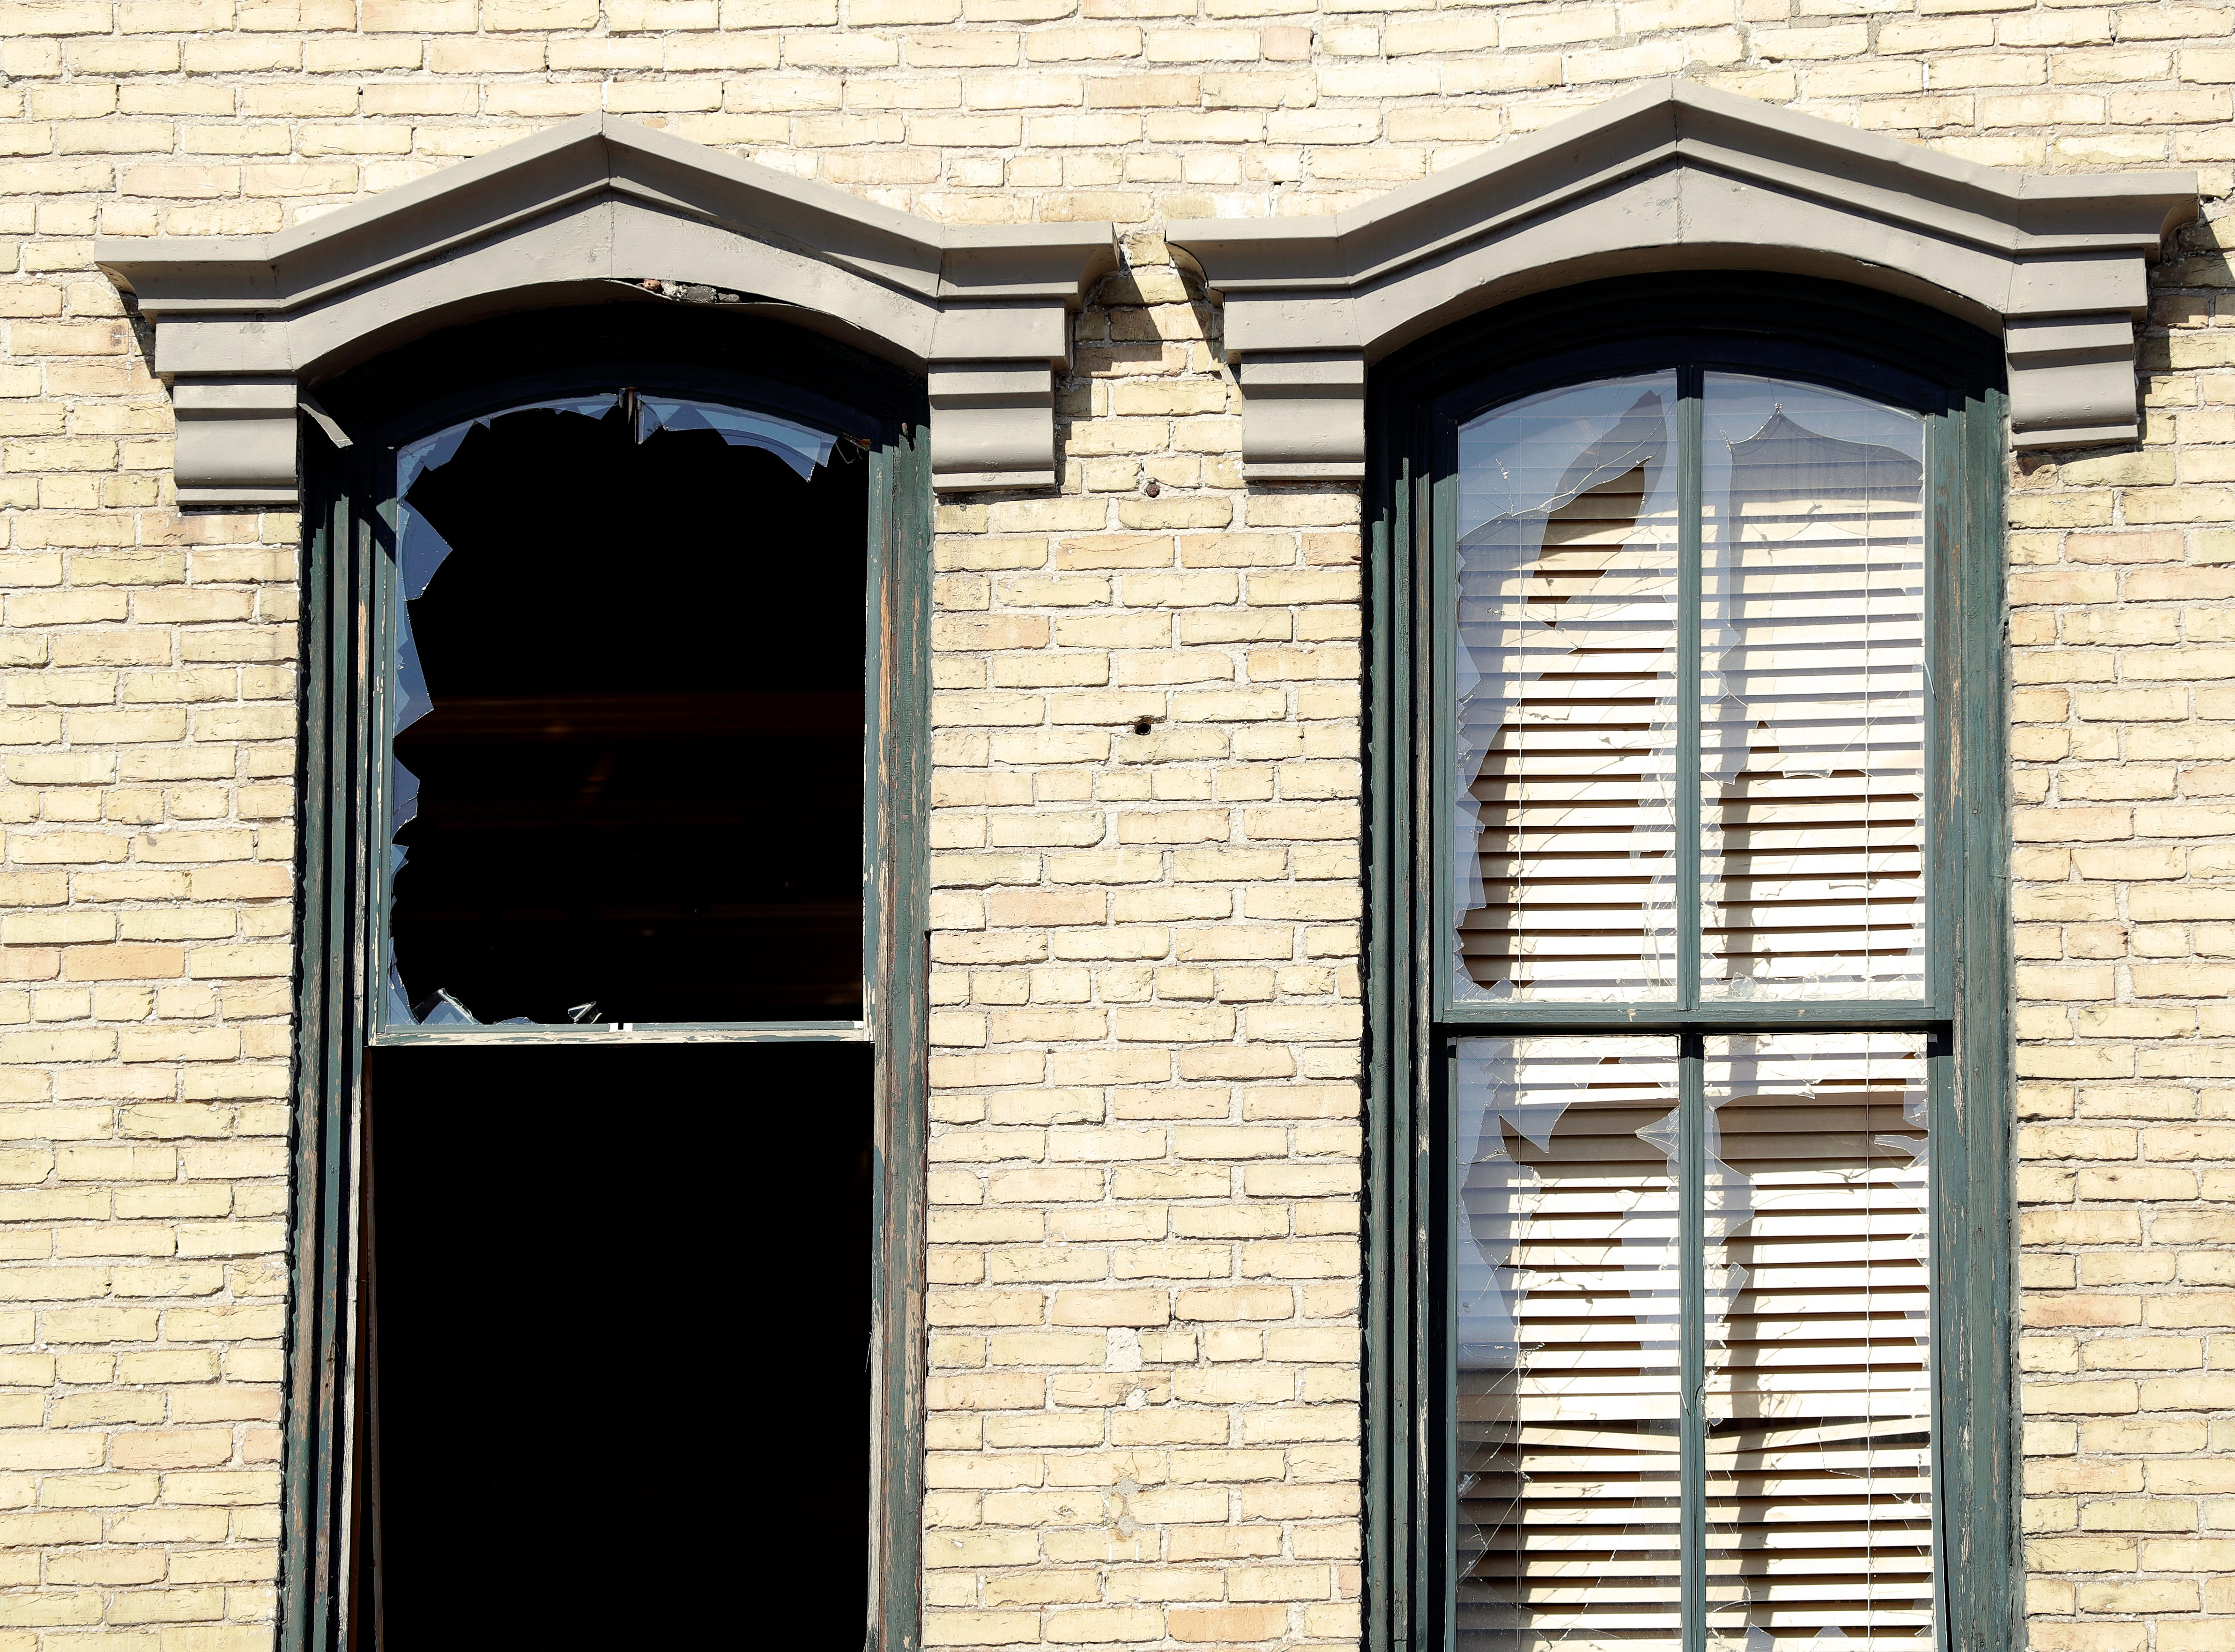 Broken windows in the building next to 100 S. Broadway in De Pere, which burnt down on April 24, 2019.